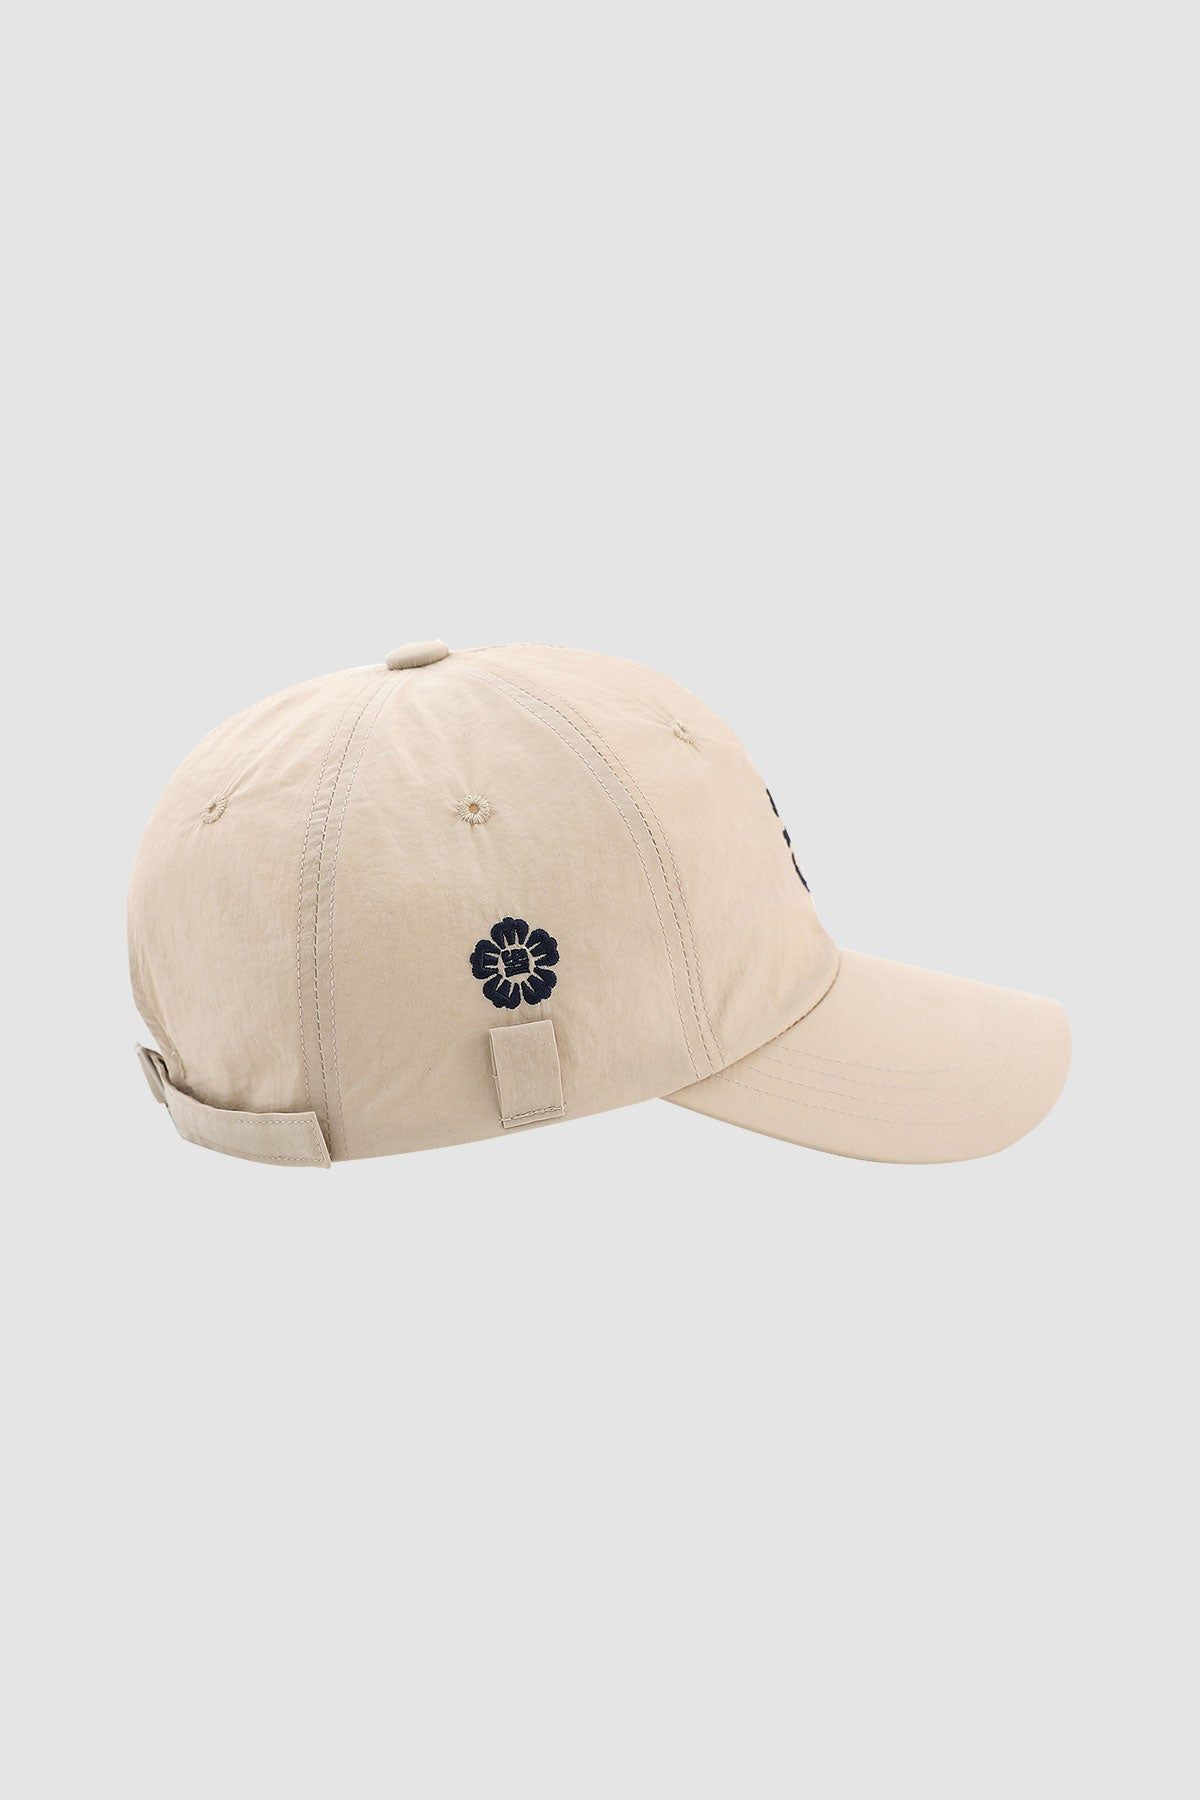 Photo of 42Olympics Ivory Nylon Cap, number 3